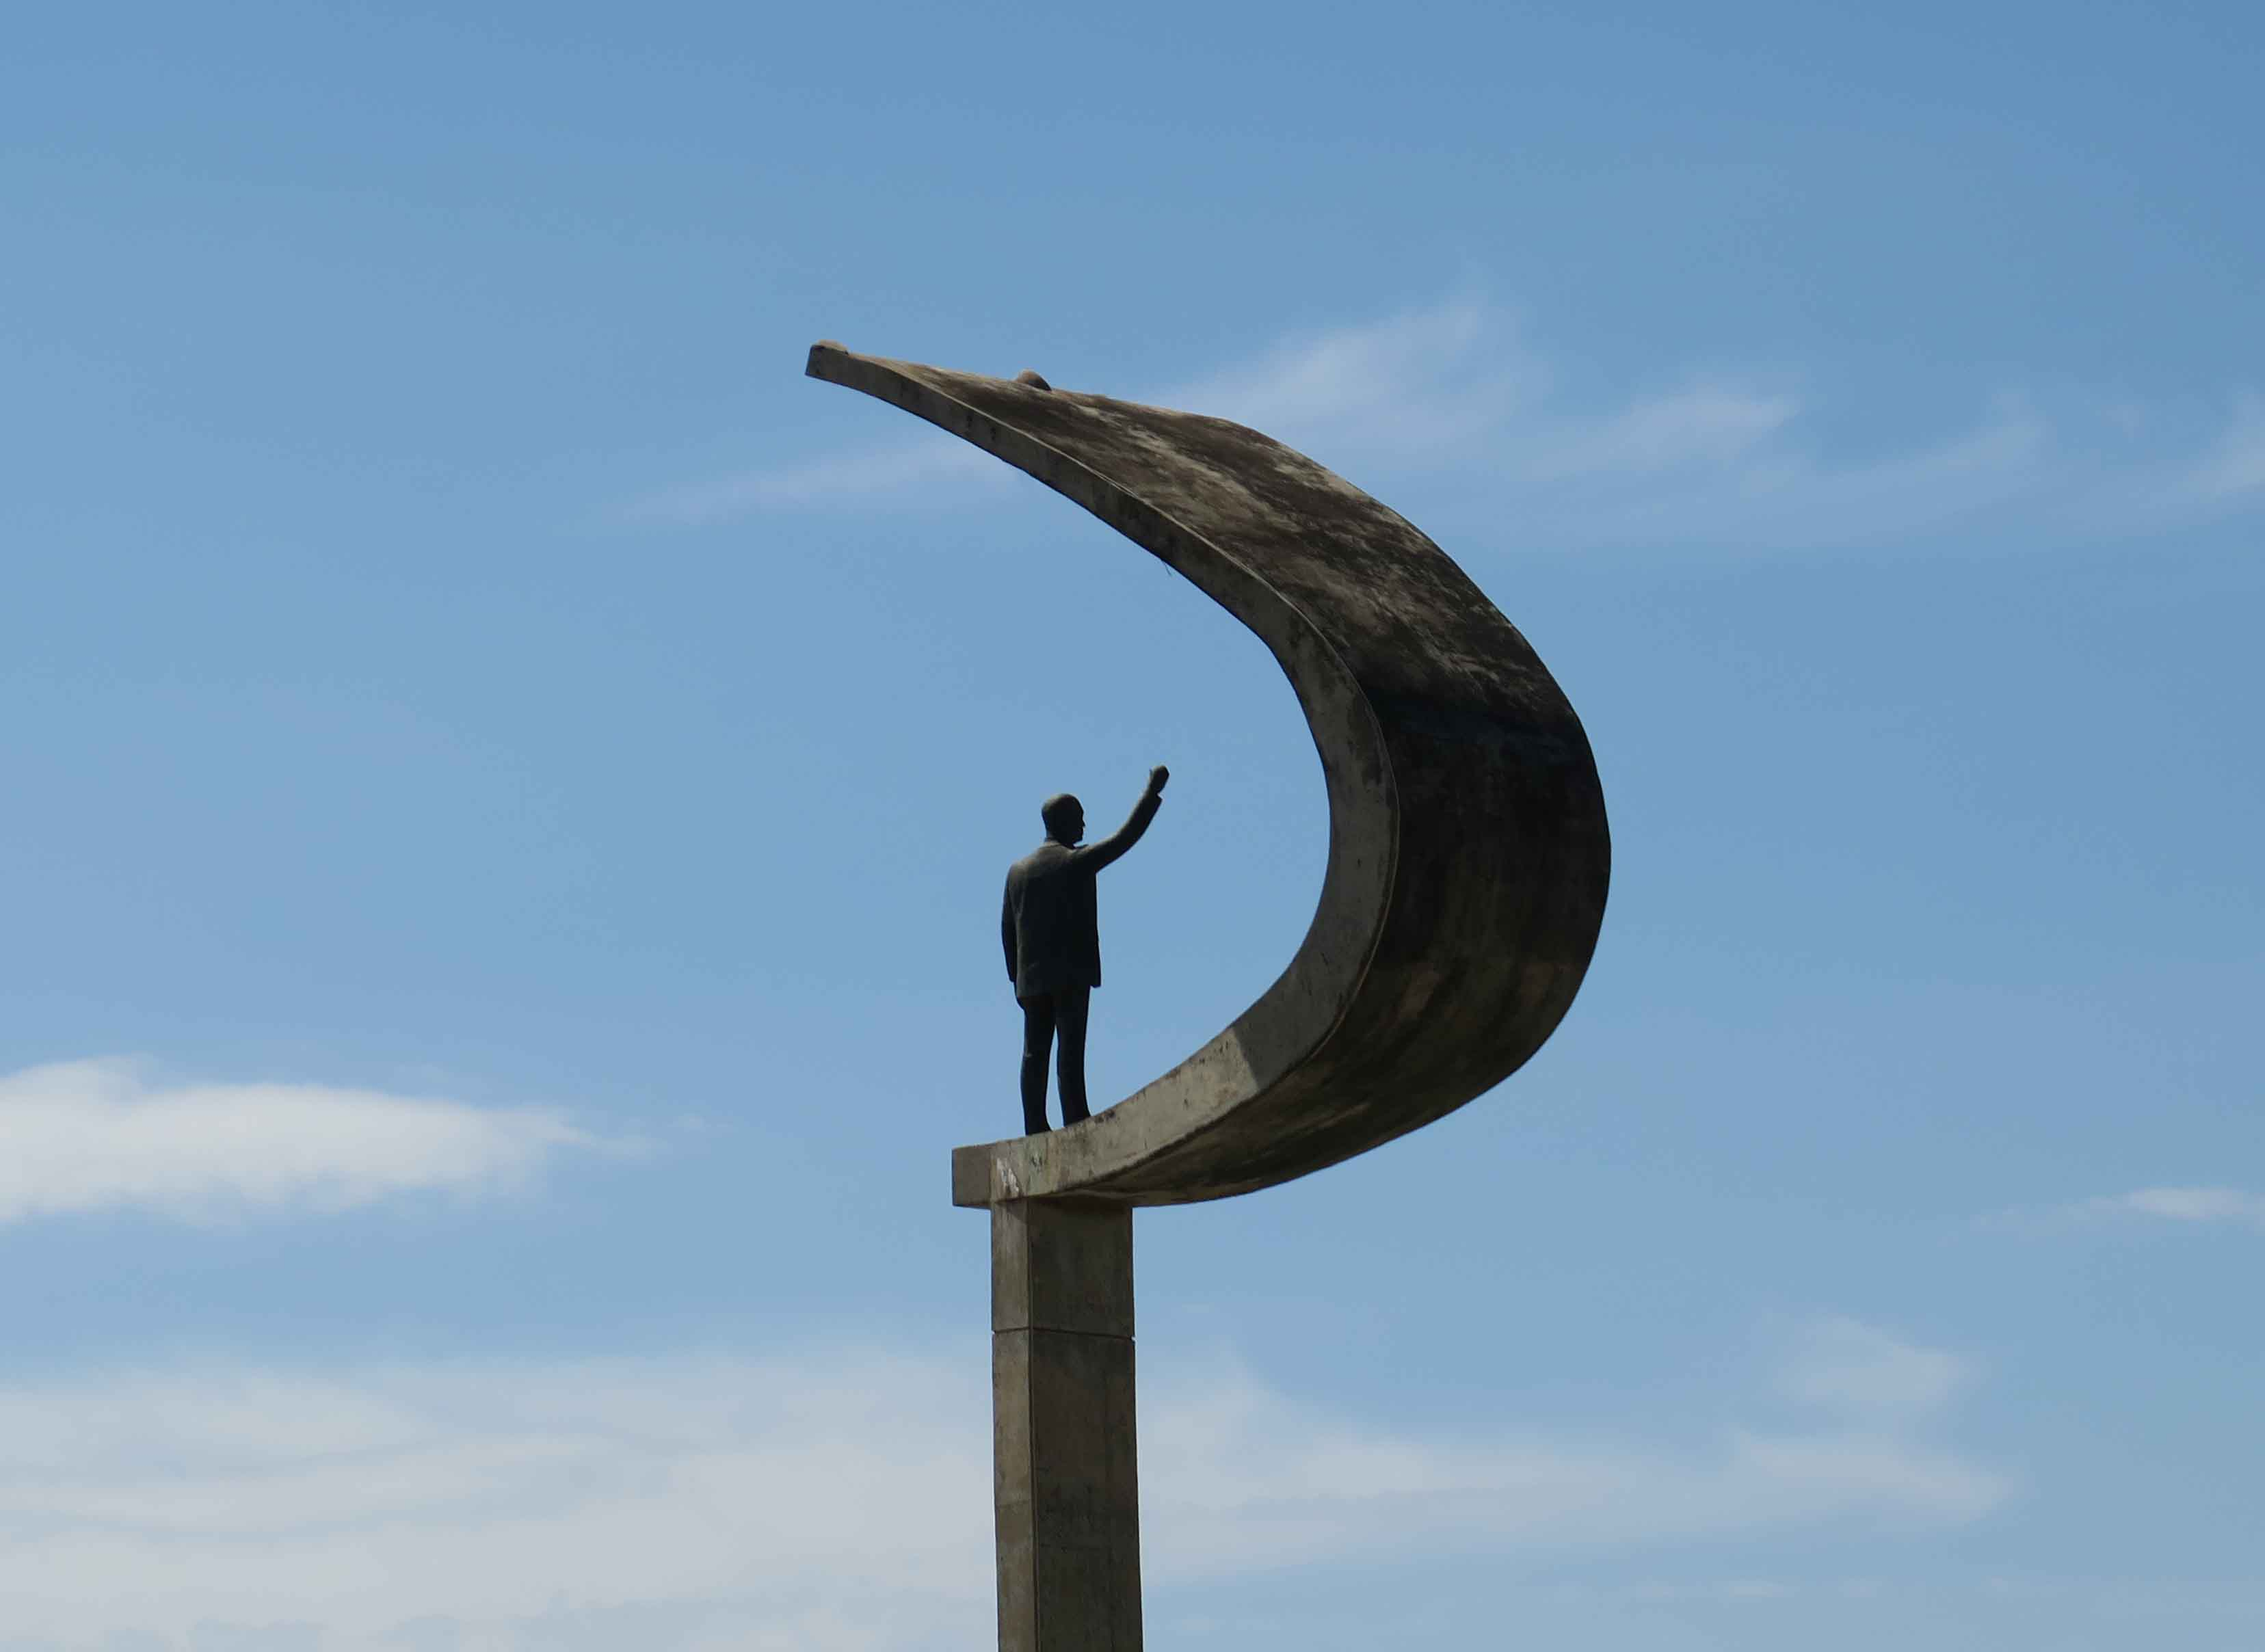 Memorial JK, Monument to President Juscelino Kubitchek, founder of Brasília; Photo by Paul Clemence